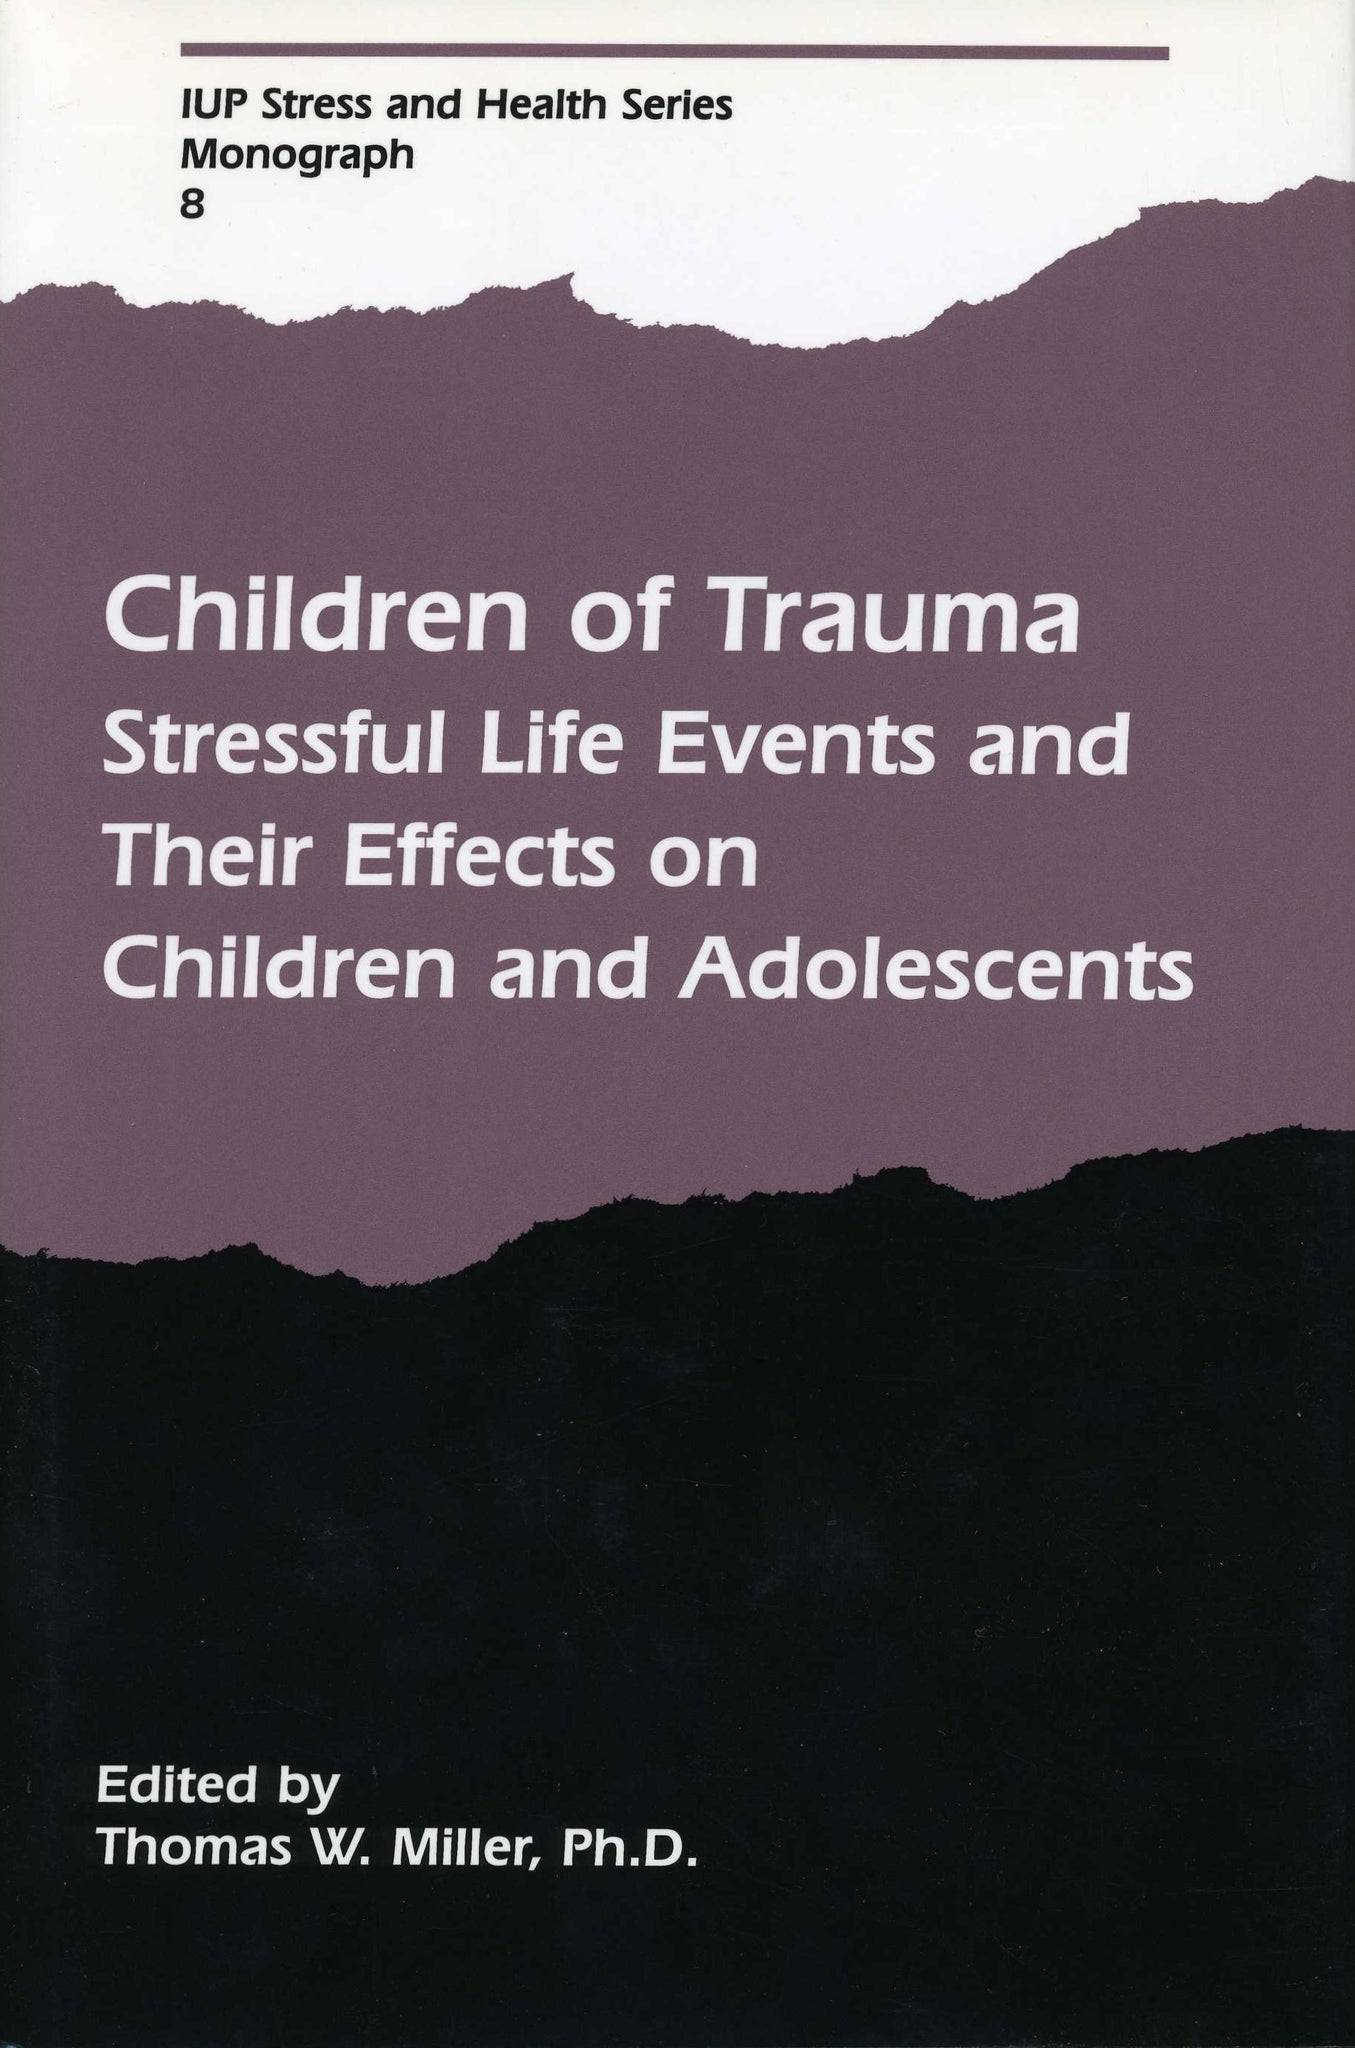 CHILDREN OF TRAUMA: Stressful Life Events and Their Effects on Children and Adolescents